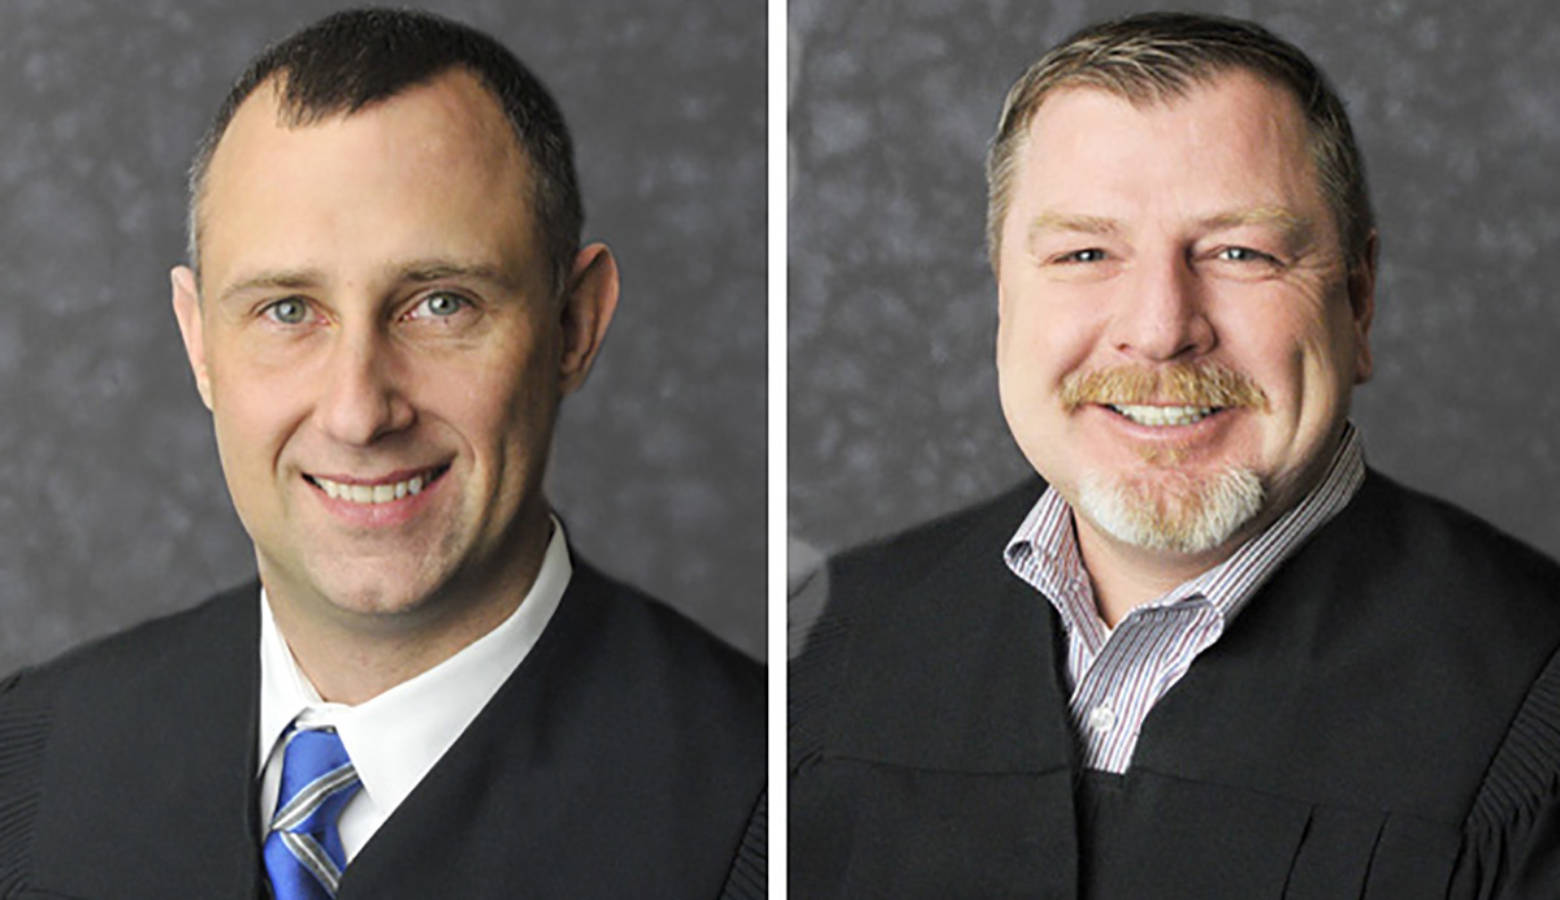 Judge Bradley Jacobs and Judge Andrew Adams were visiting Indianapolis for a judicial education conference. (Provided by the Indiana Supreme Court)